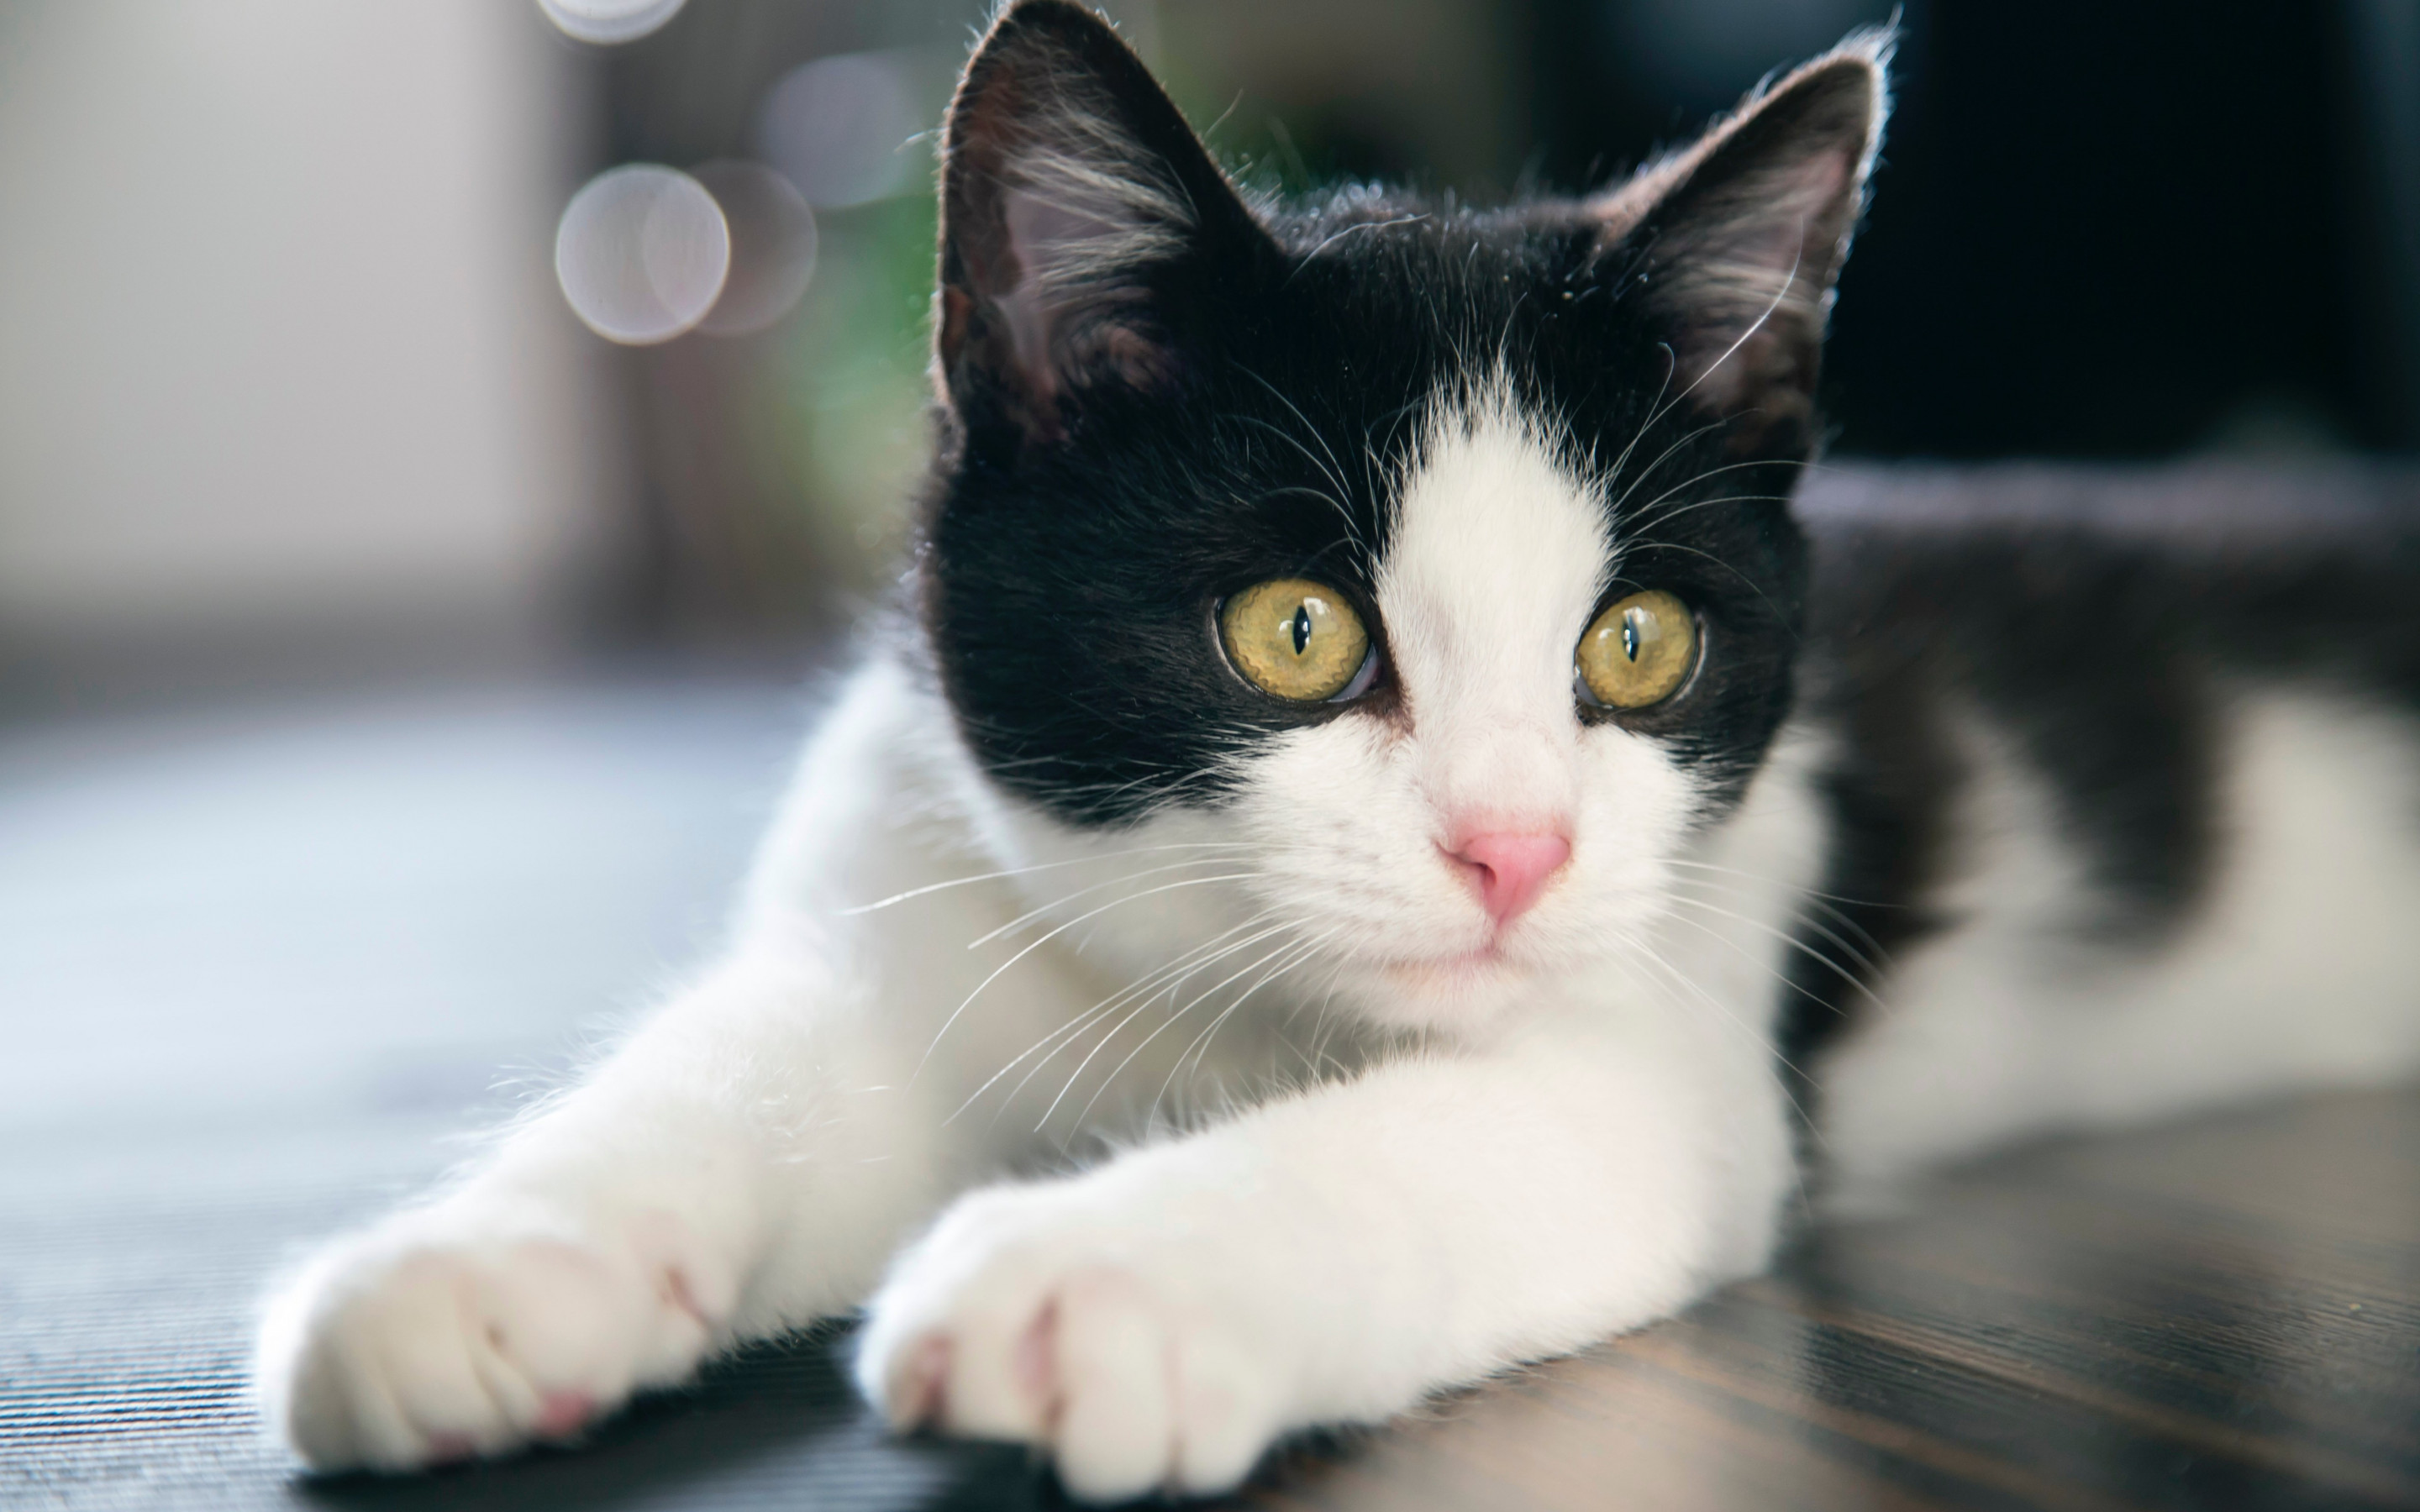 Download Wallpaper Black And White Cat 2880x1800